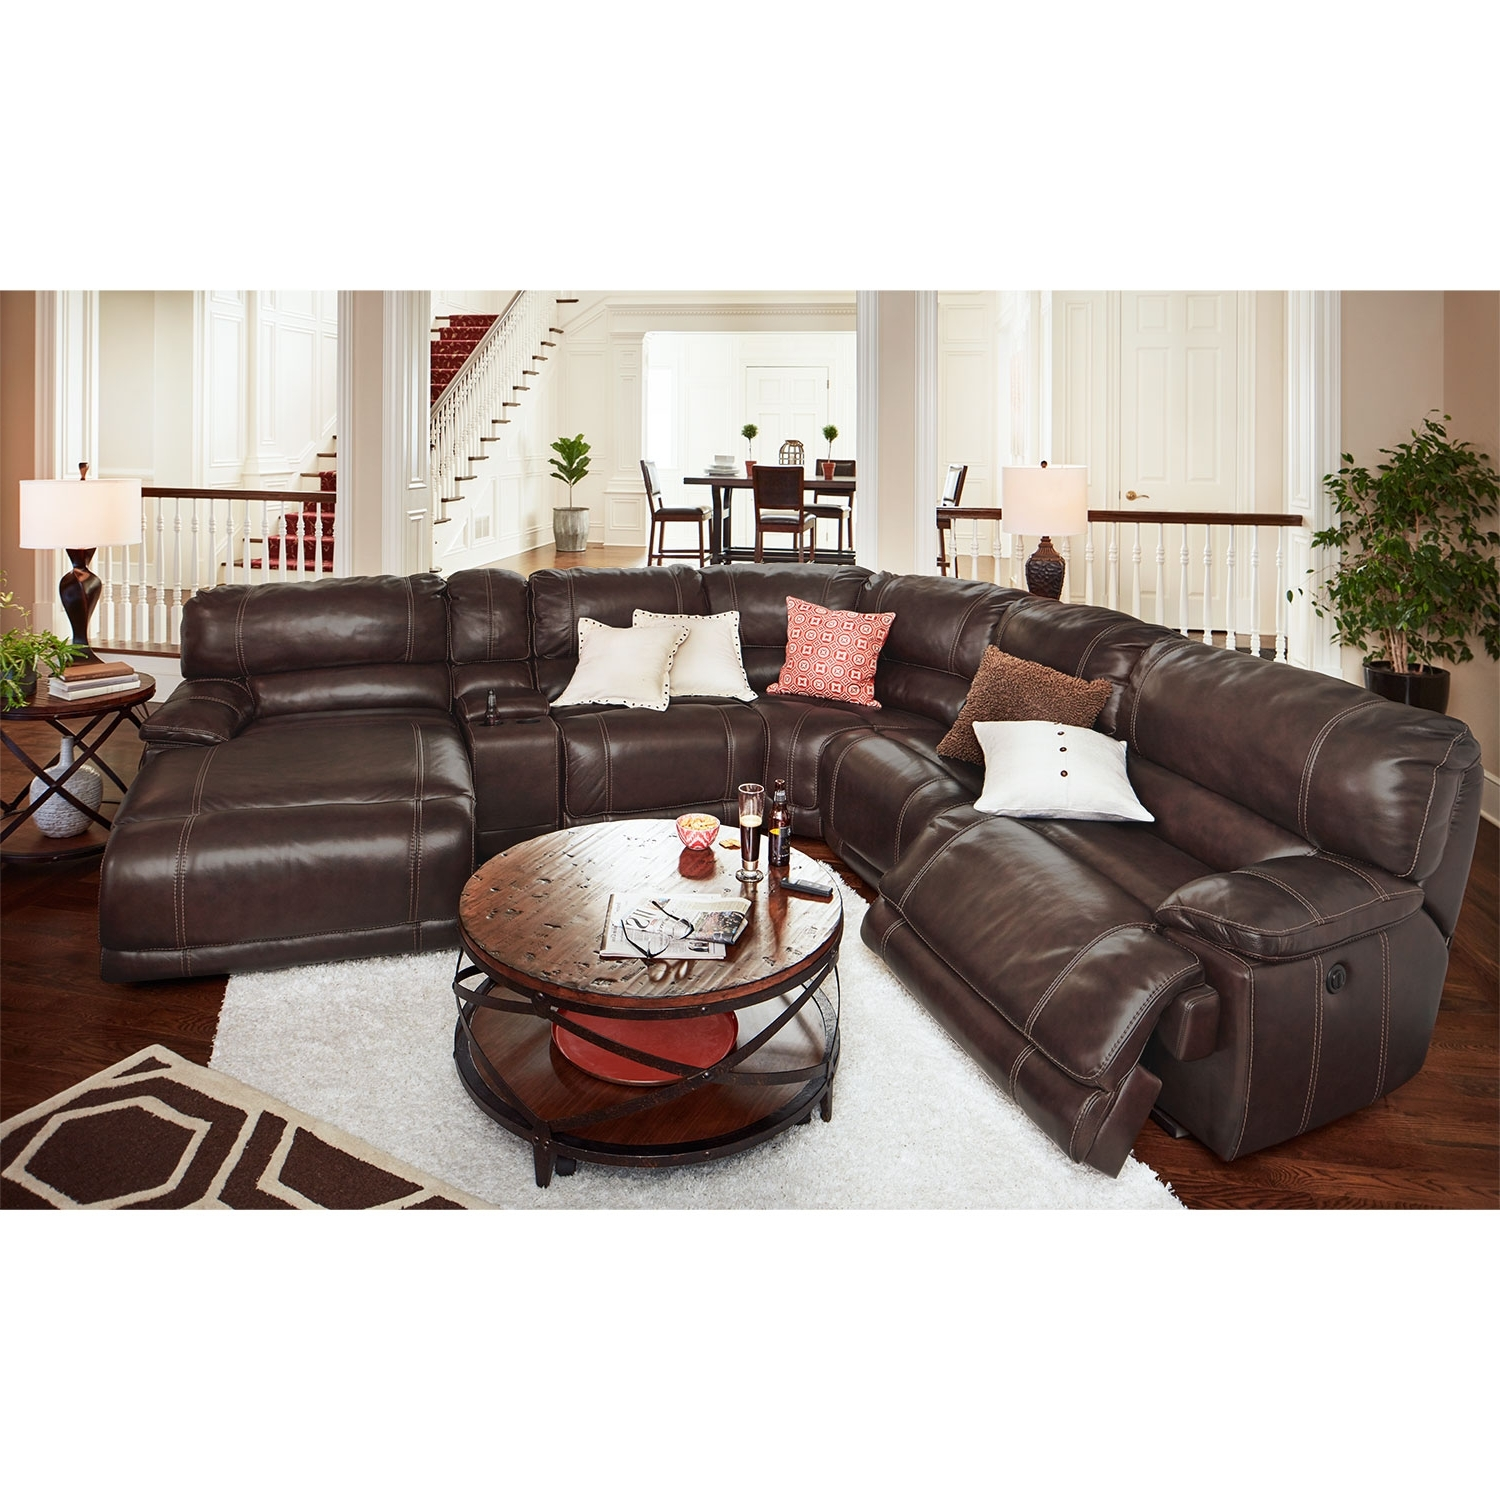 6 Piece Leather Sectional Sofas With Regard To Current Big Softie 6 Pc. Power Reclining Sectionalone80 White Leather (Gallery 14 of 20)